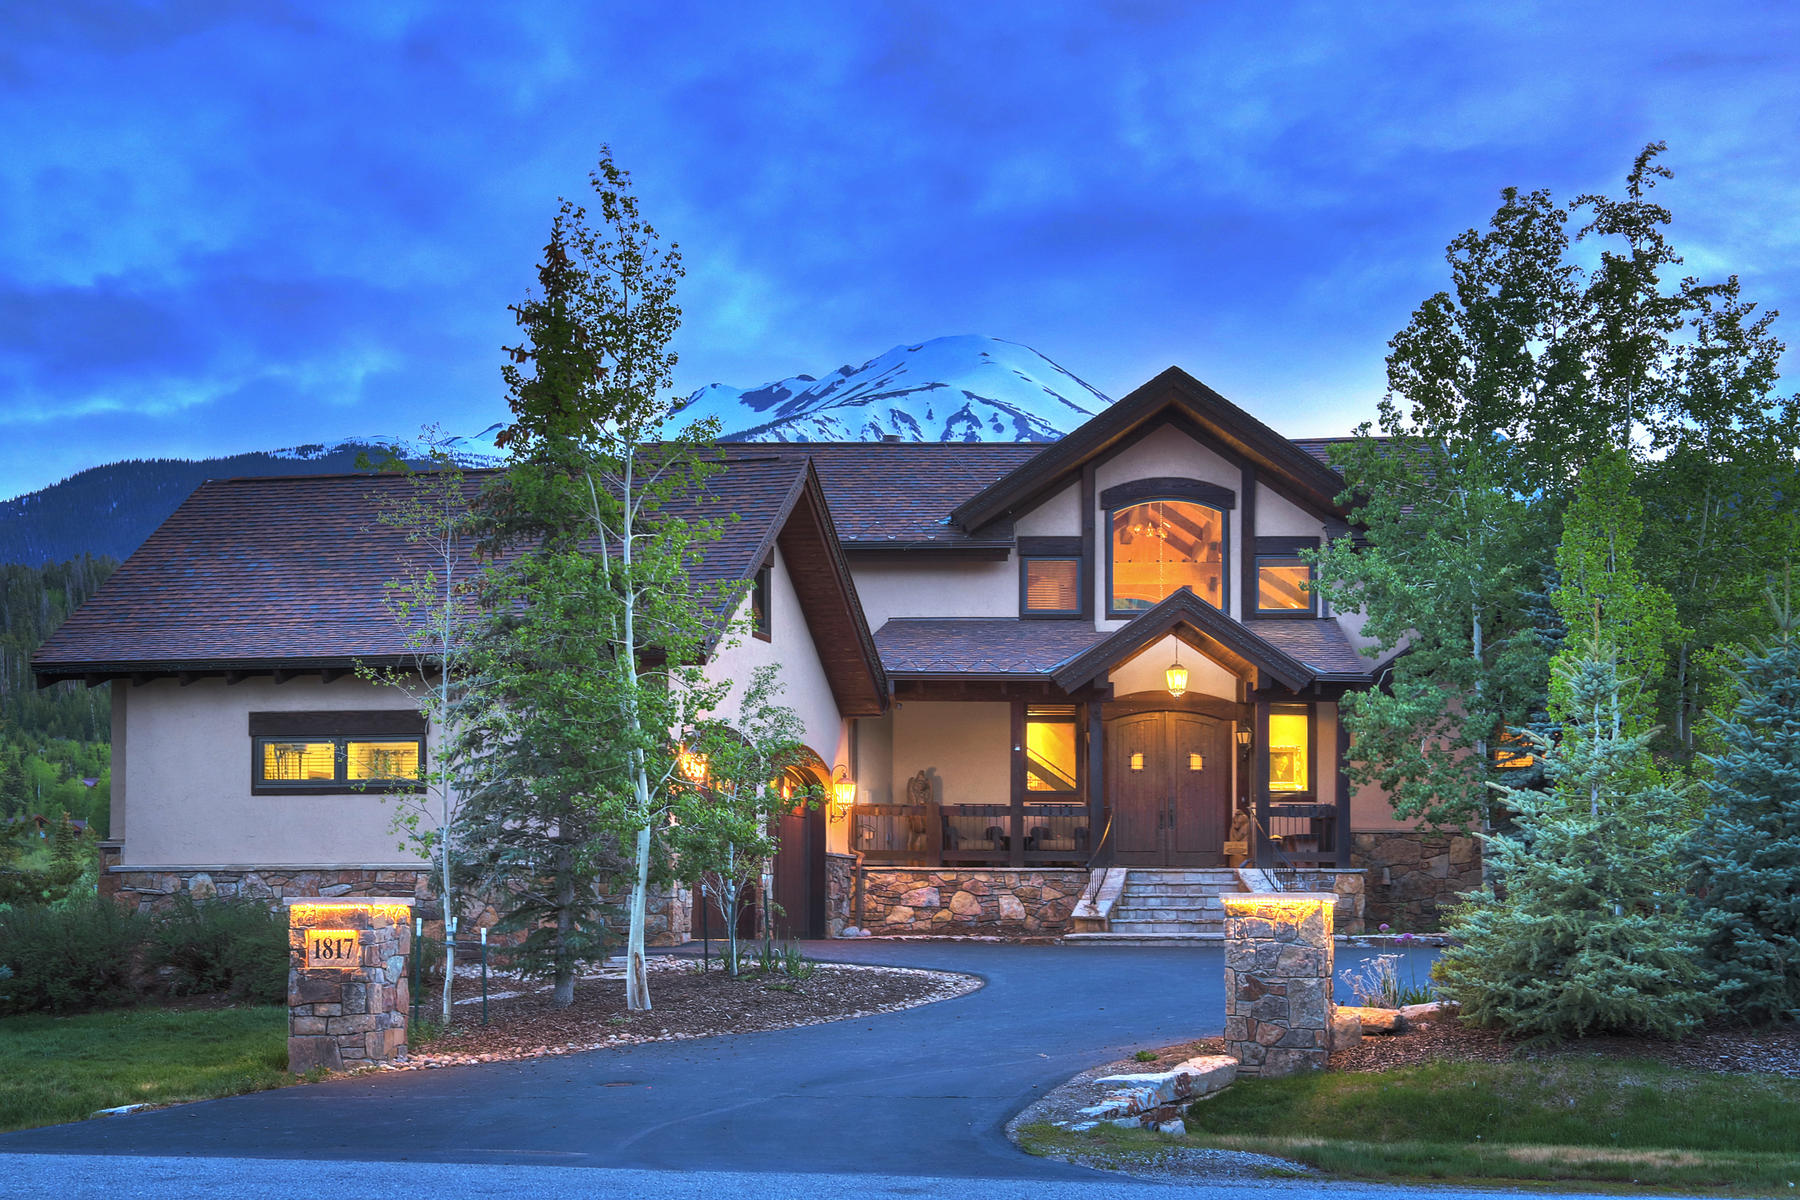 Single Family Homes for Sale at Italian Style Home on Raven Golf Course 1817 Falcon Drive, Silverthorne, Colorado 80498 United States